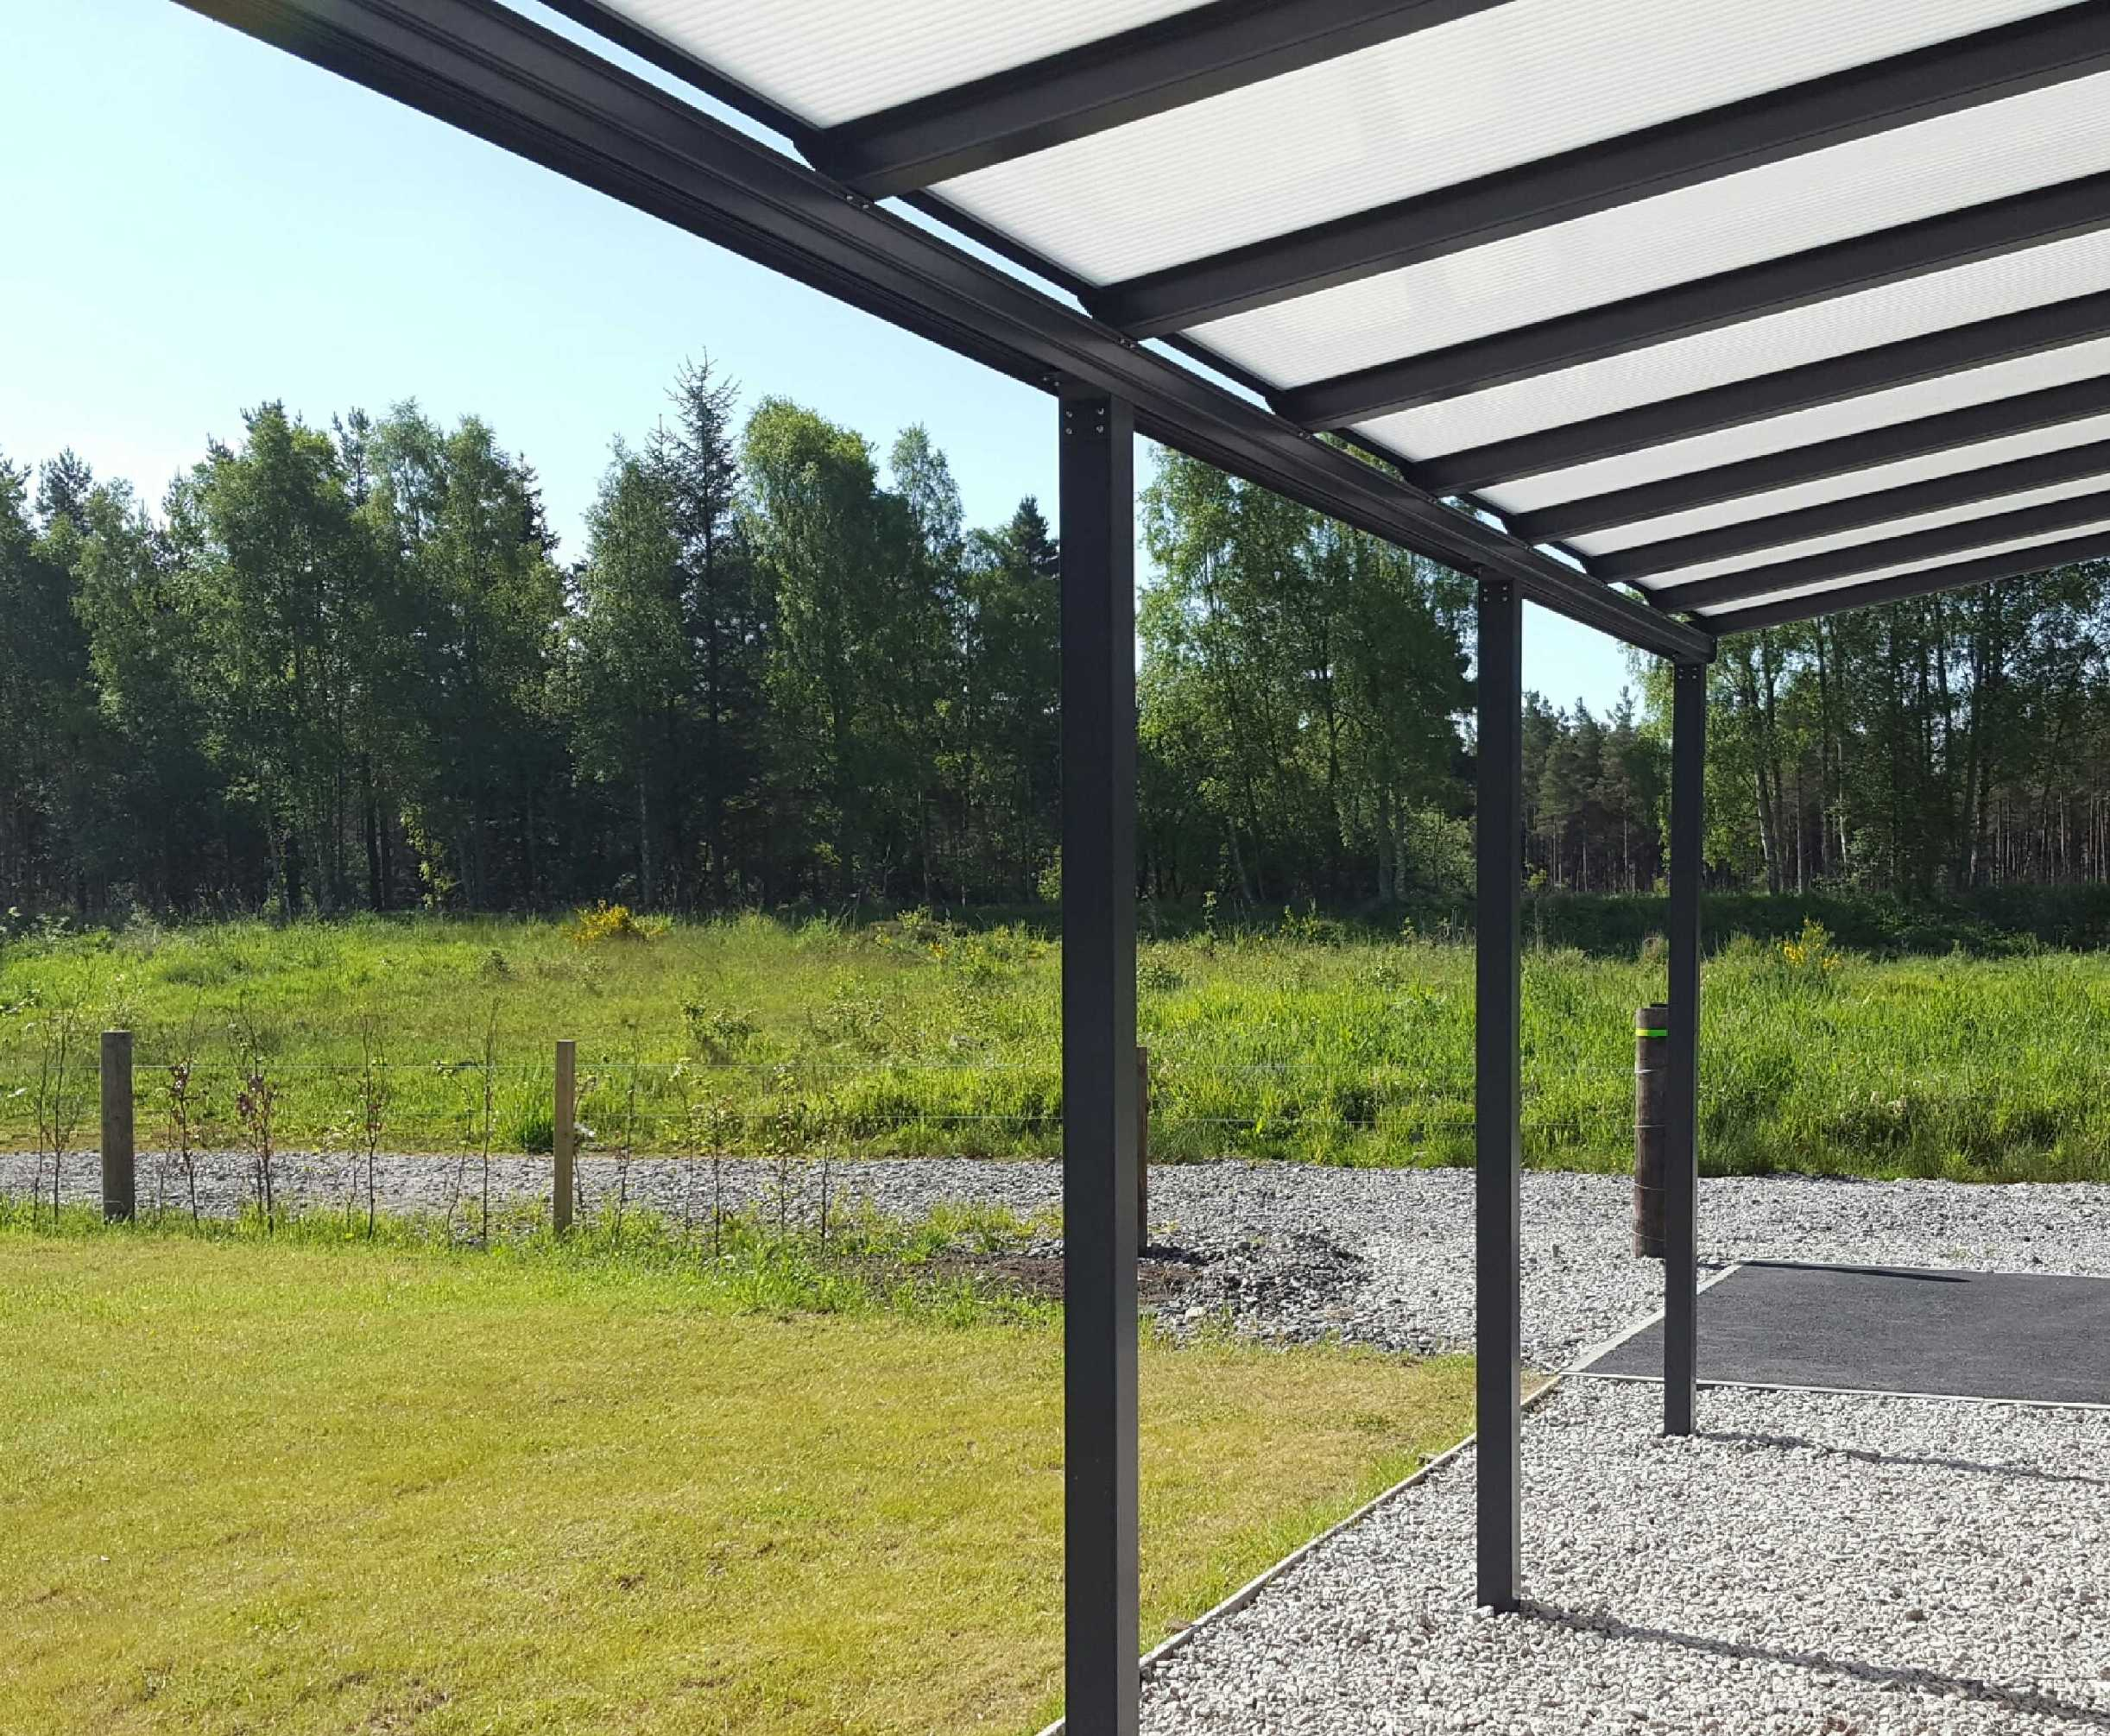 Omega Smart Lean-To Canopy, Anthracite Grey, UNGLAZED for 6mm Glazing - 5.6m (W) x 2.5m (P), (3) Supporting Posts